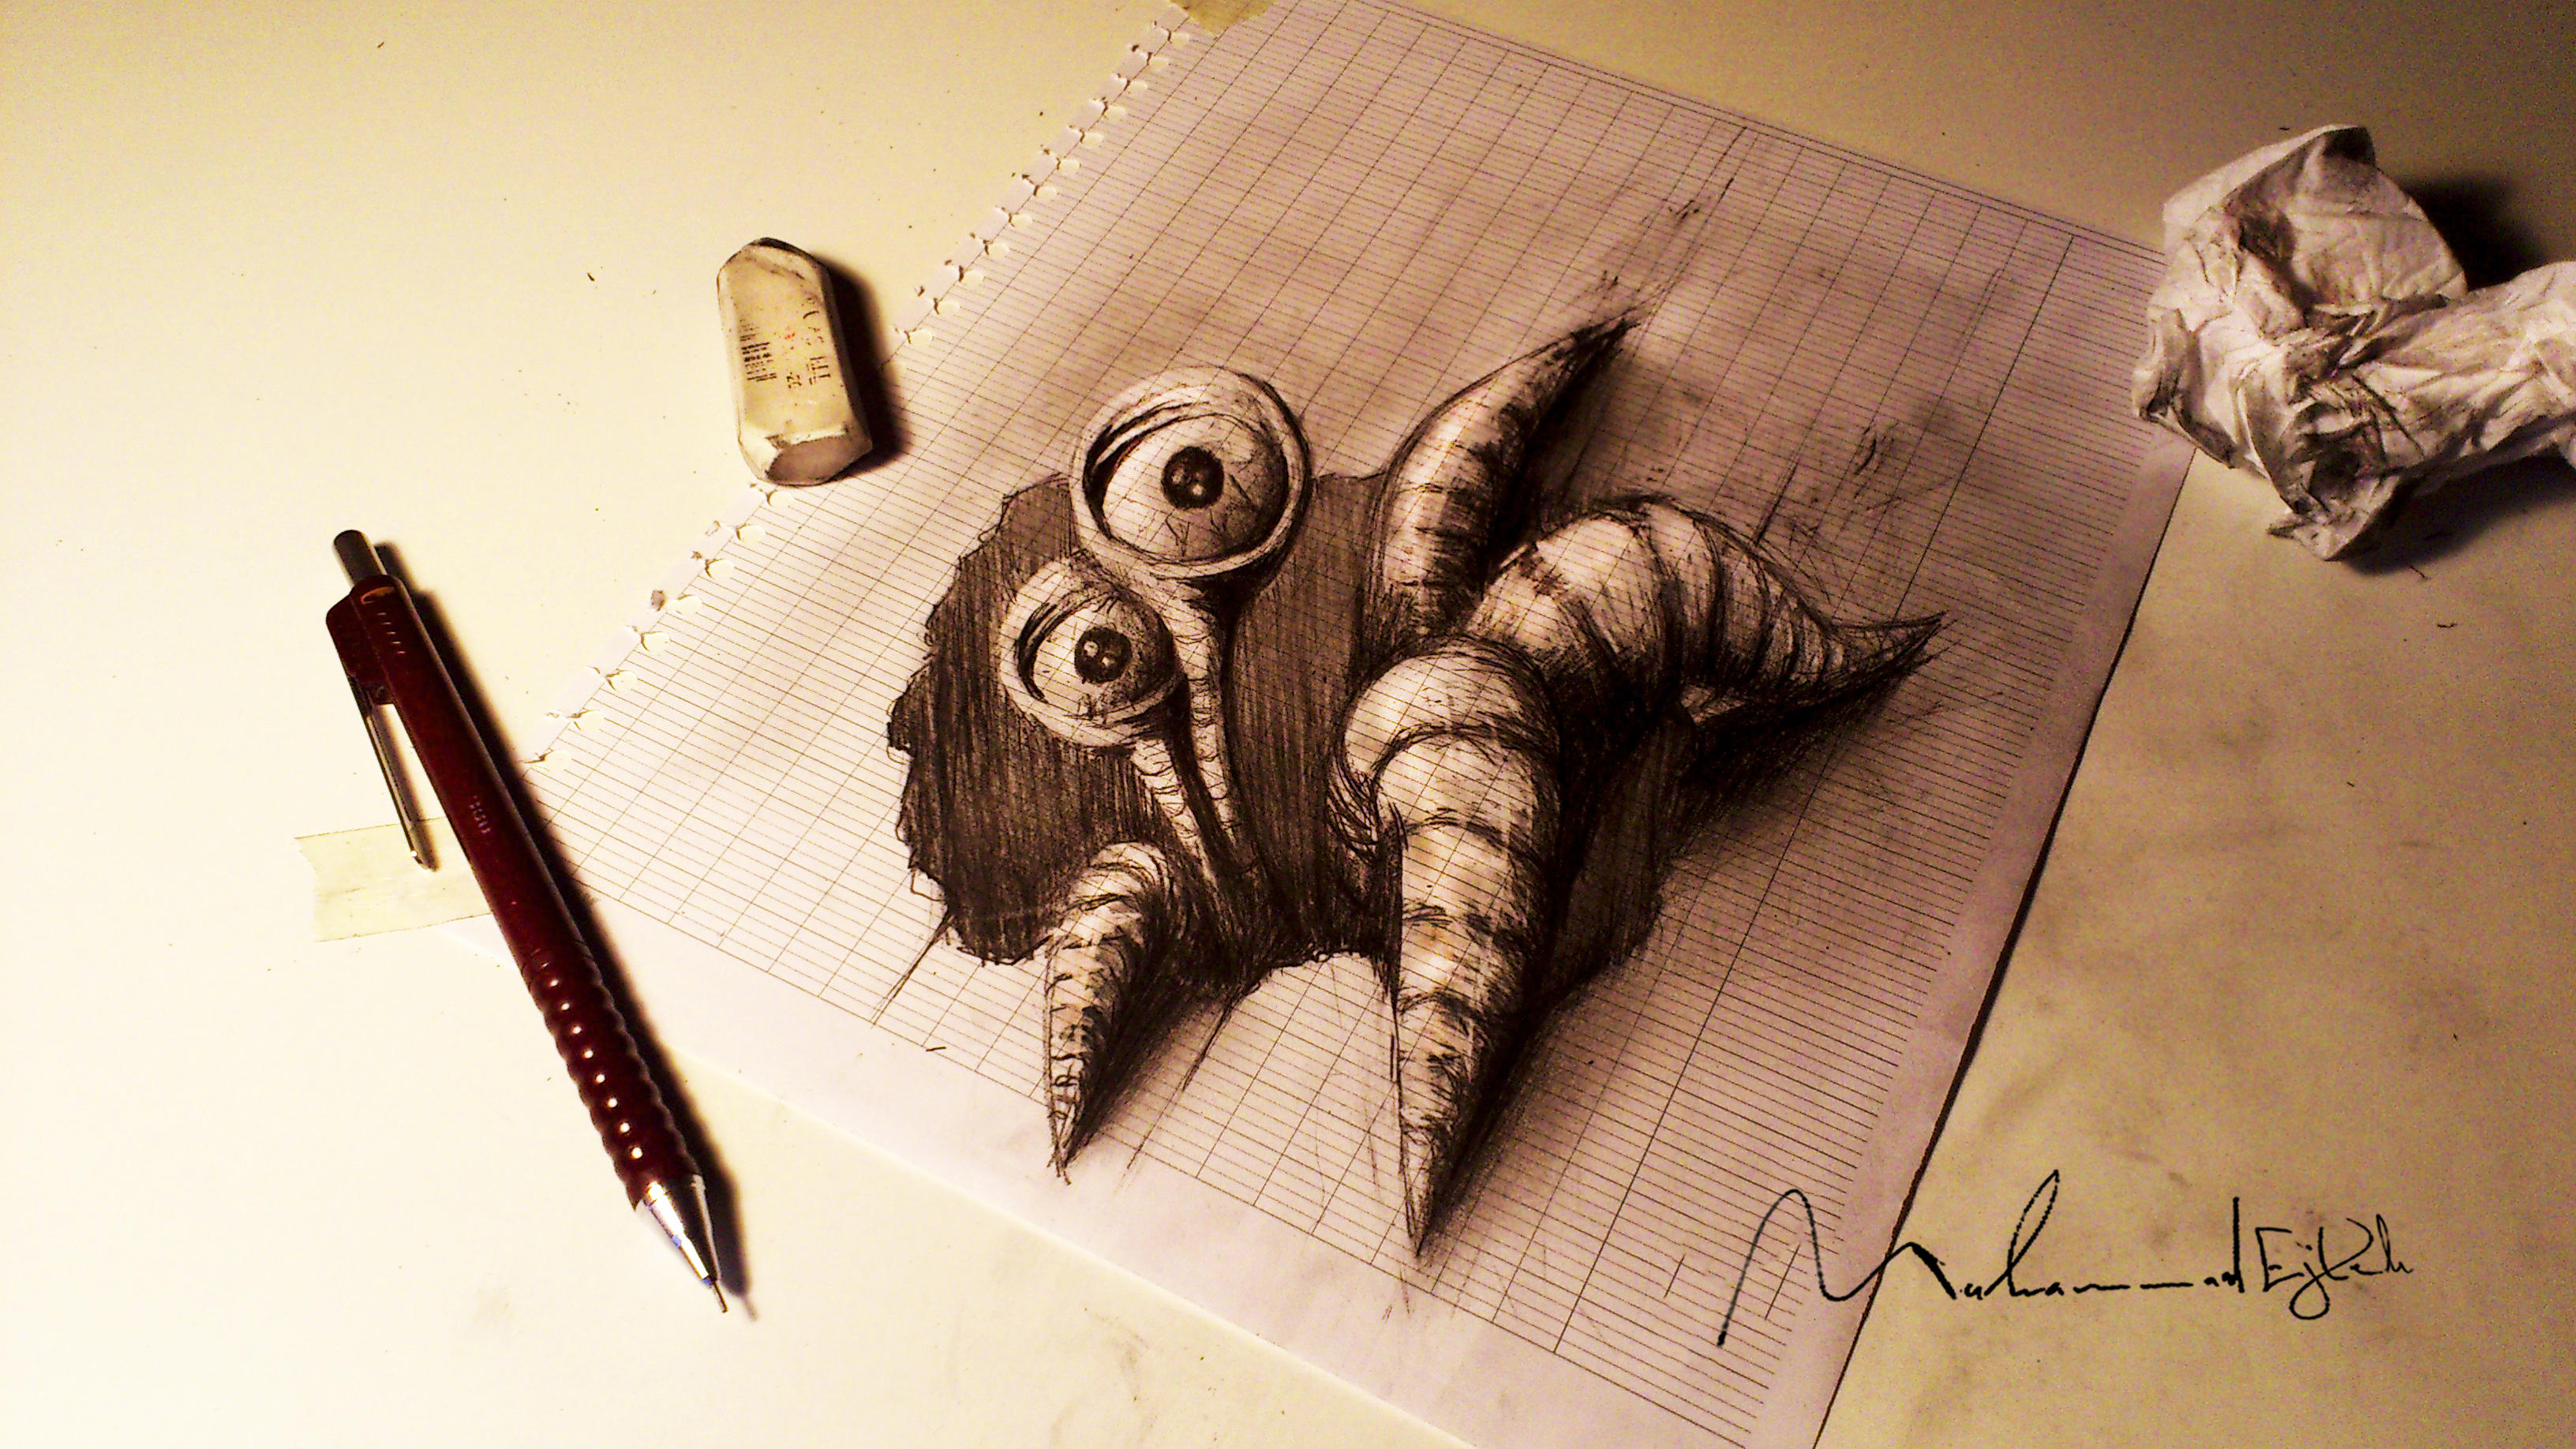 Paper monster 2 by Muhammad-Ejleh